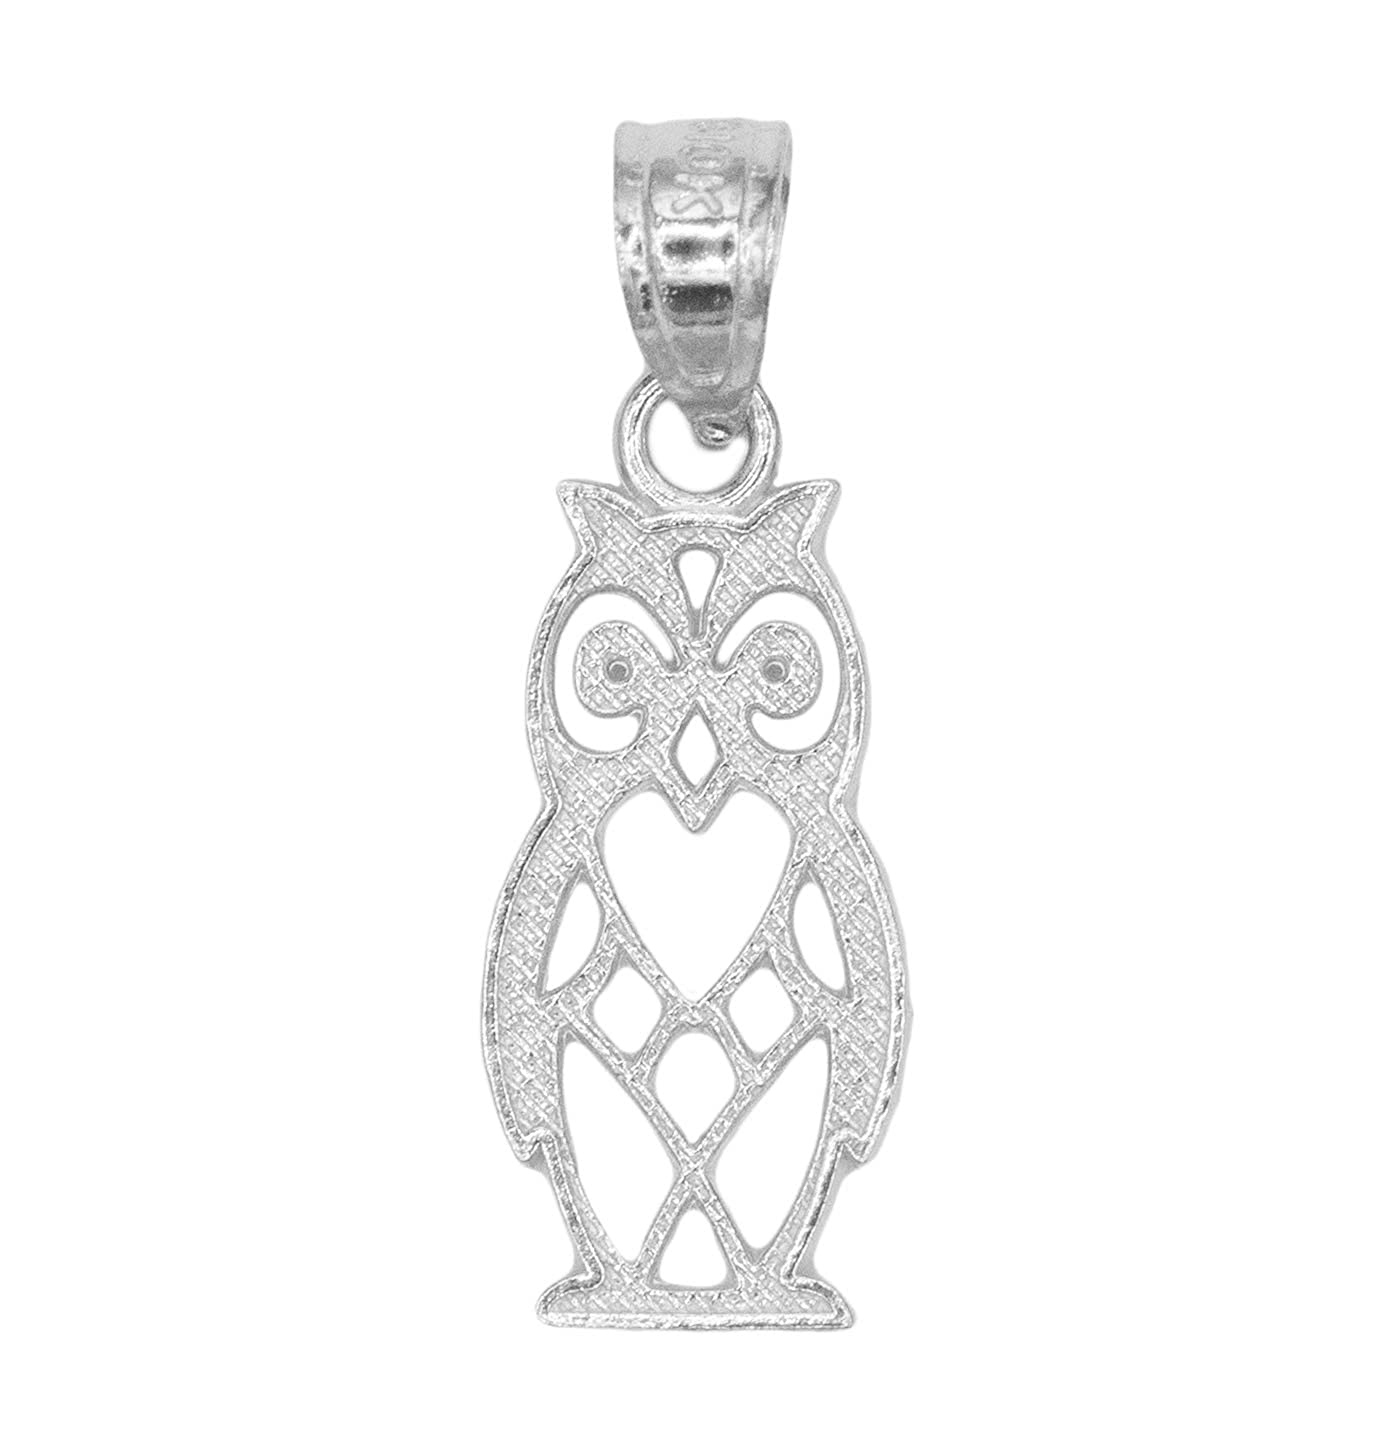 14k Solid Gold Owl Pendant Necklace Graduation Gifts for Students Symbol of Knowledge and Protection Jewelry Good Luck Charm